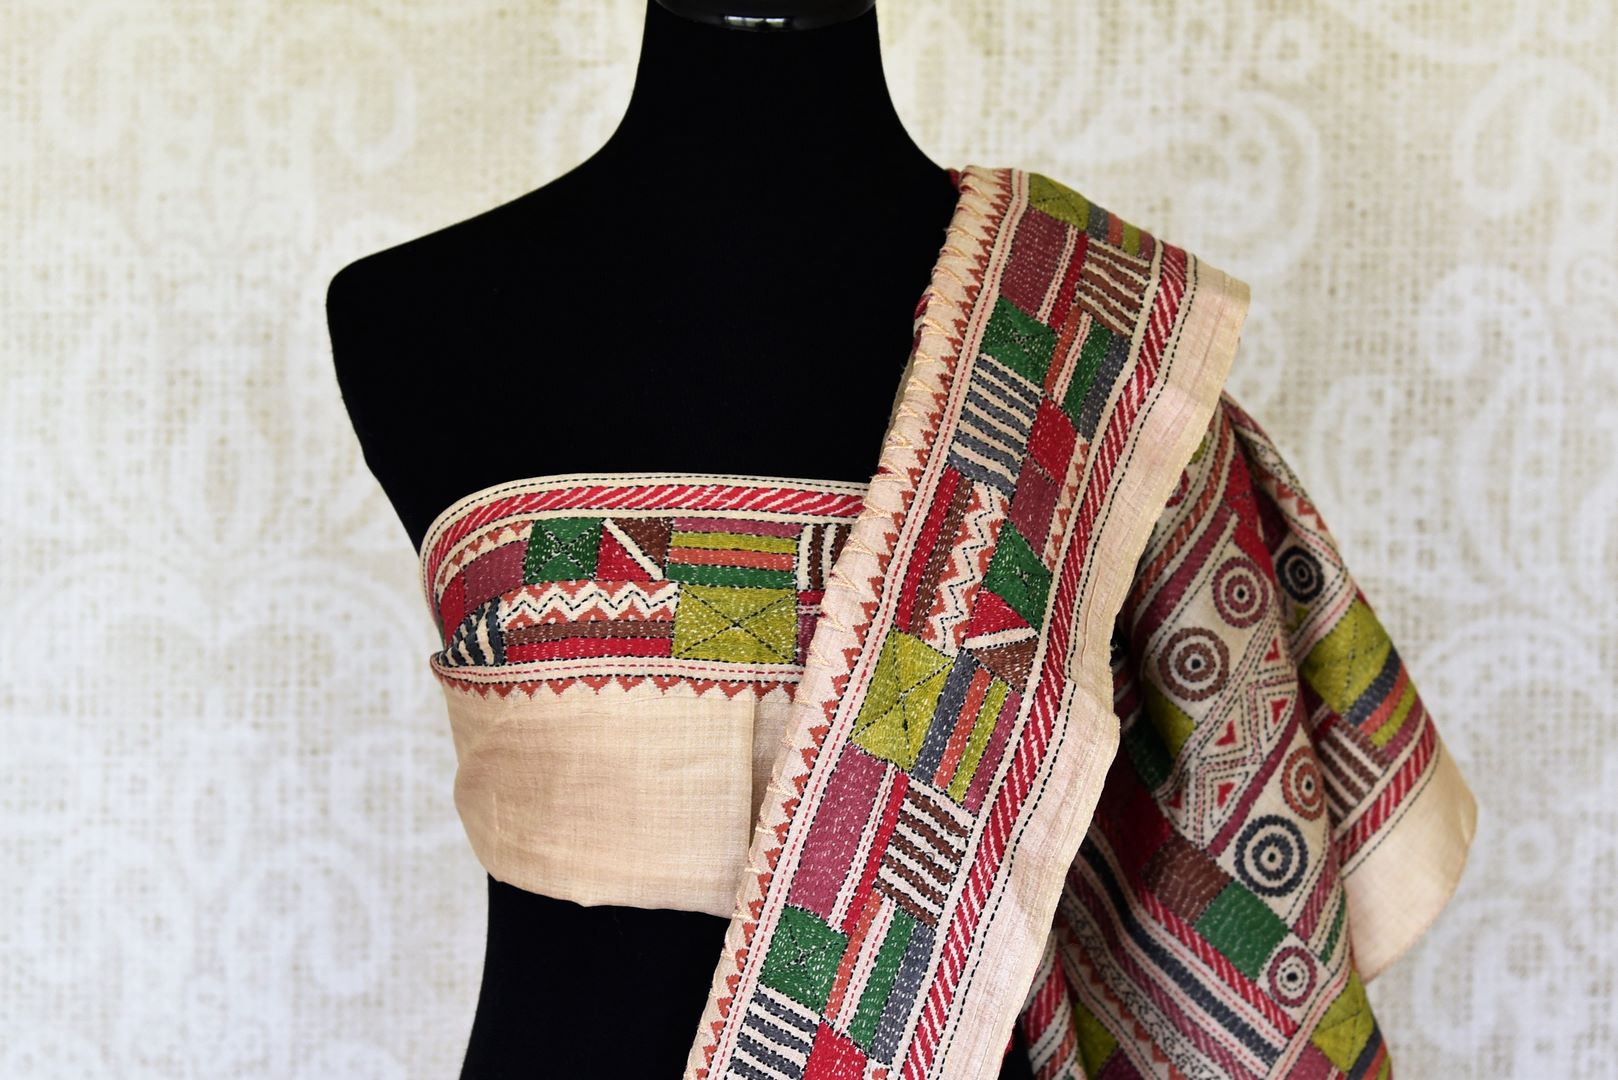 Buy beige and red silk saree online in USA with multicolor kantha work border. Make special occasions even more special with your captivating traditional style in Banarasi sarees from Pure Elegance Indian clothing in USA.-blouse pallu